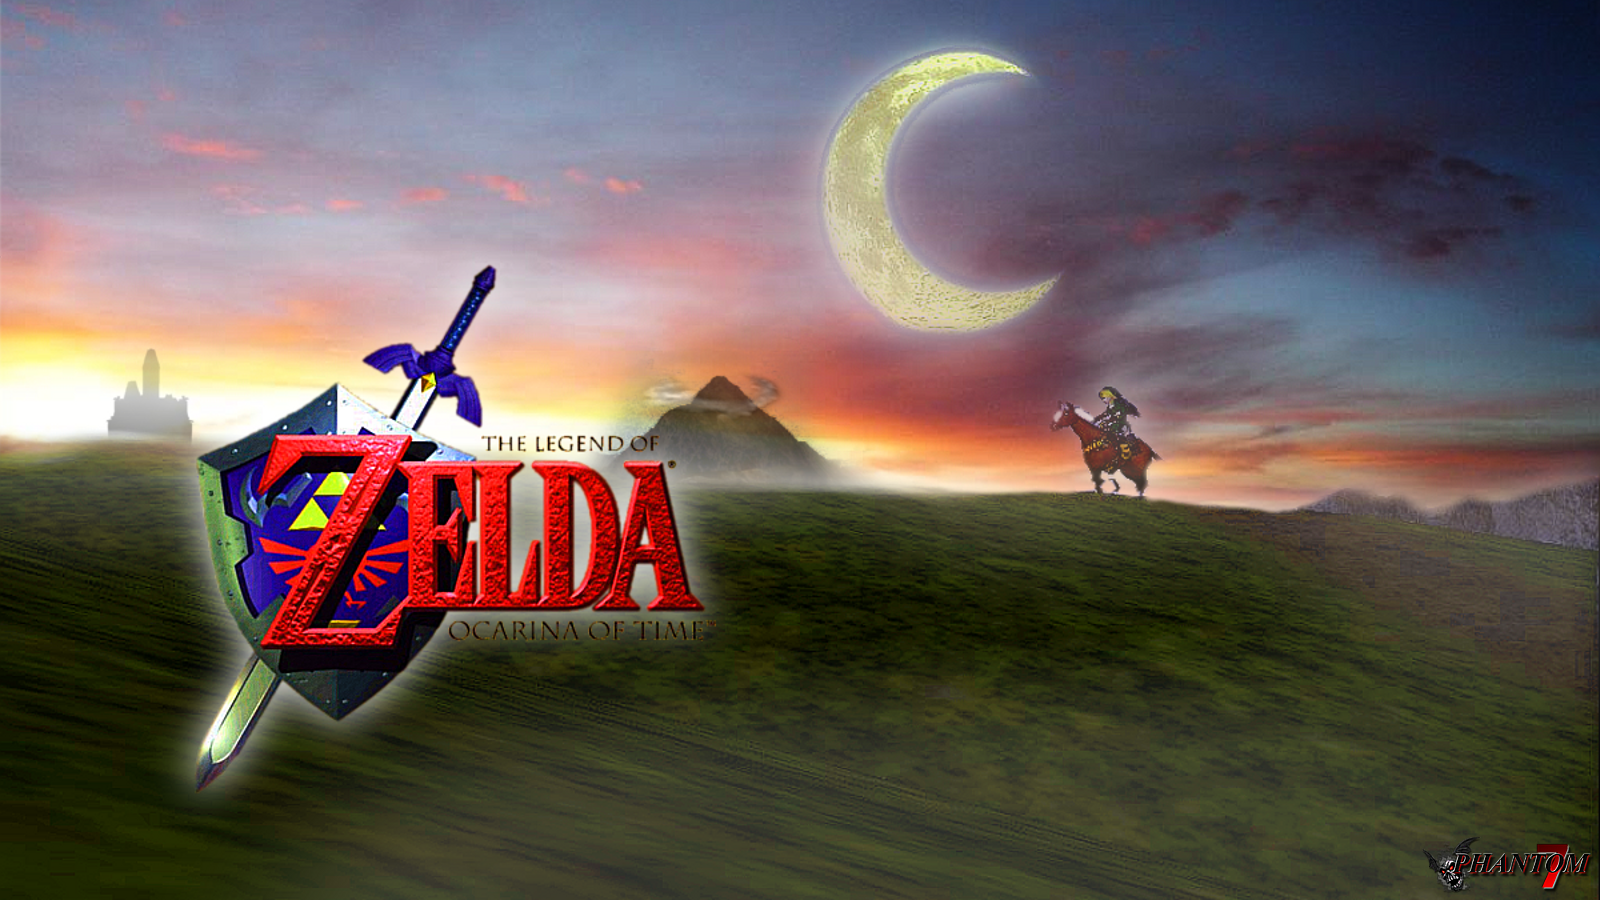 Free Download Ocarina Of Time Intro 16x9 By Phantom 7 1600x900